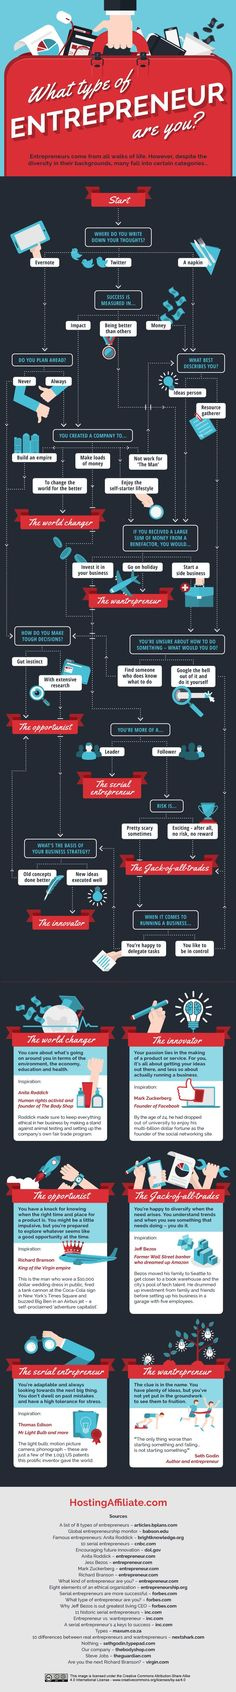 What Type of Entrepreneur Are You? (Infographic)